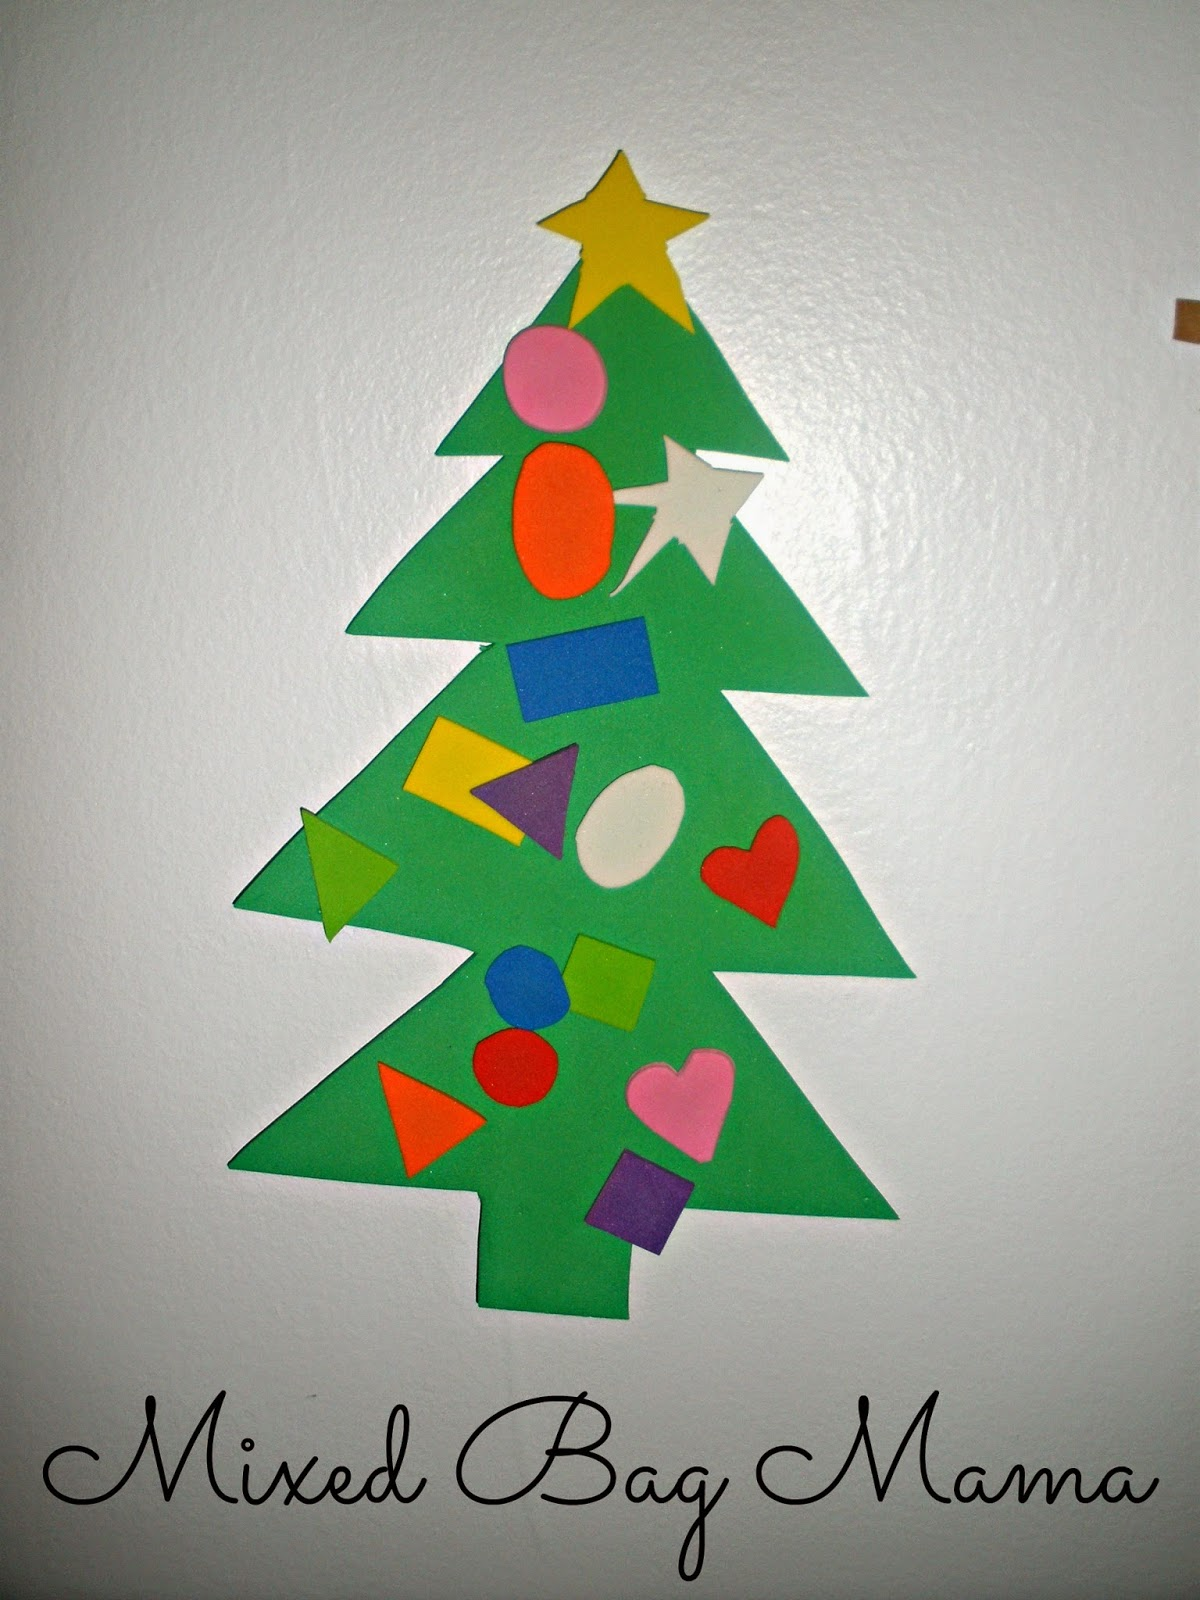 Mixed bag mama simple christmas crafts w young kids for Christmas crafts for young children